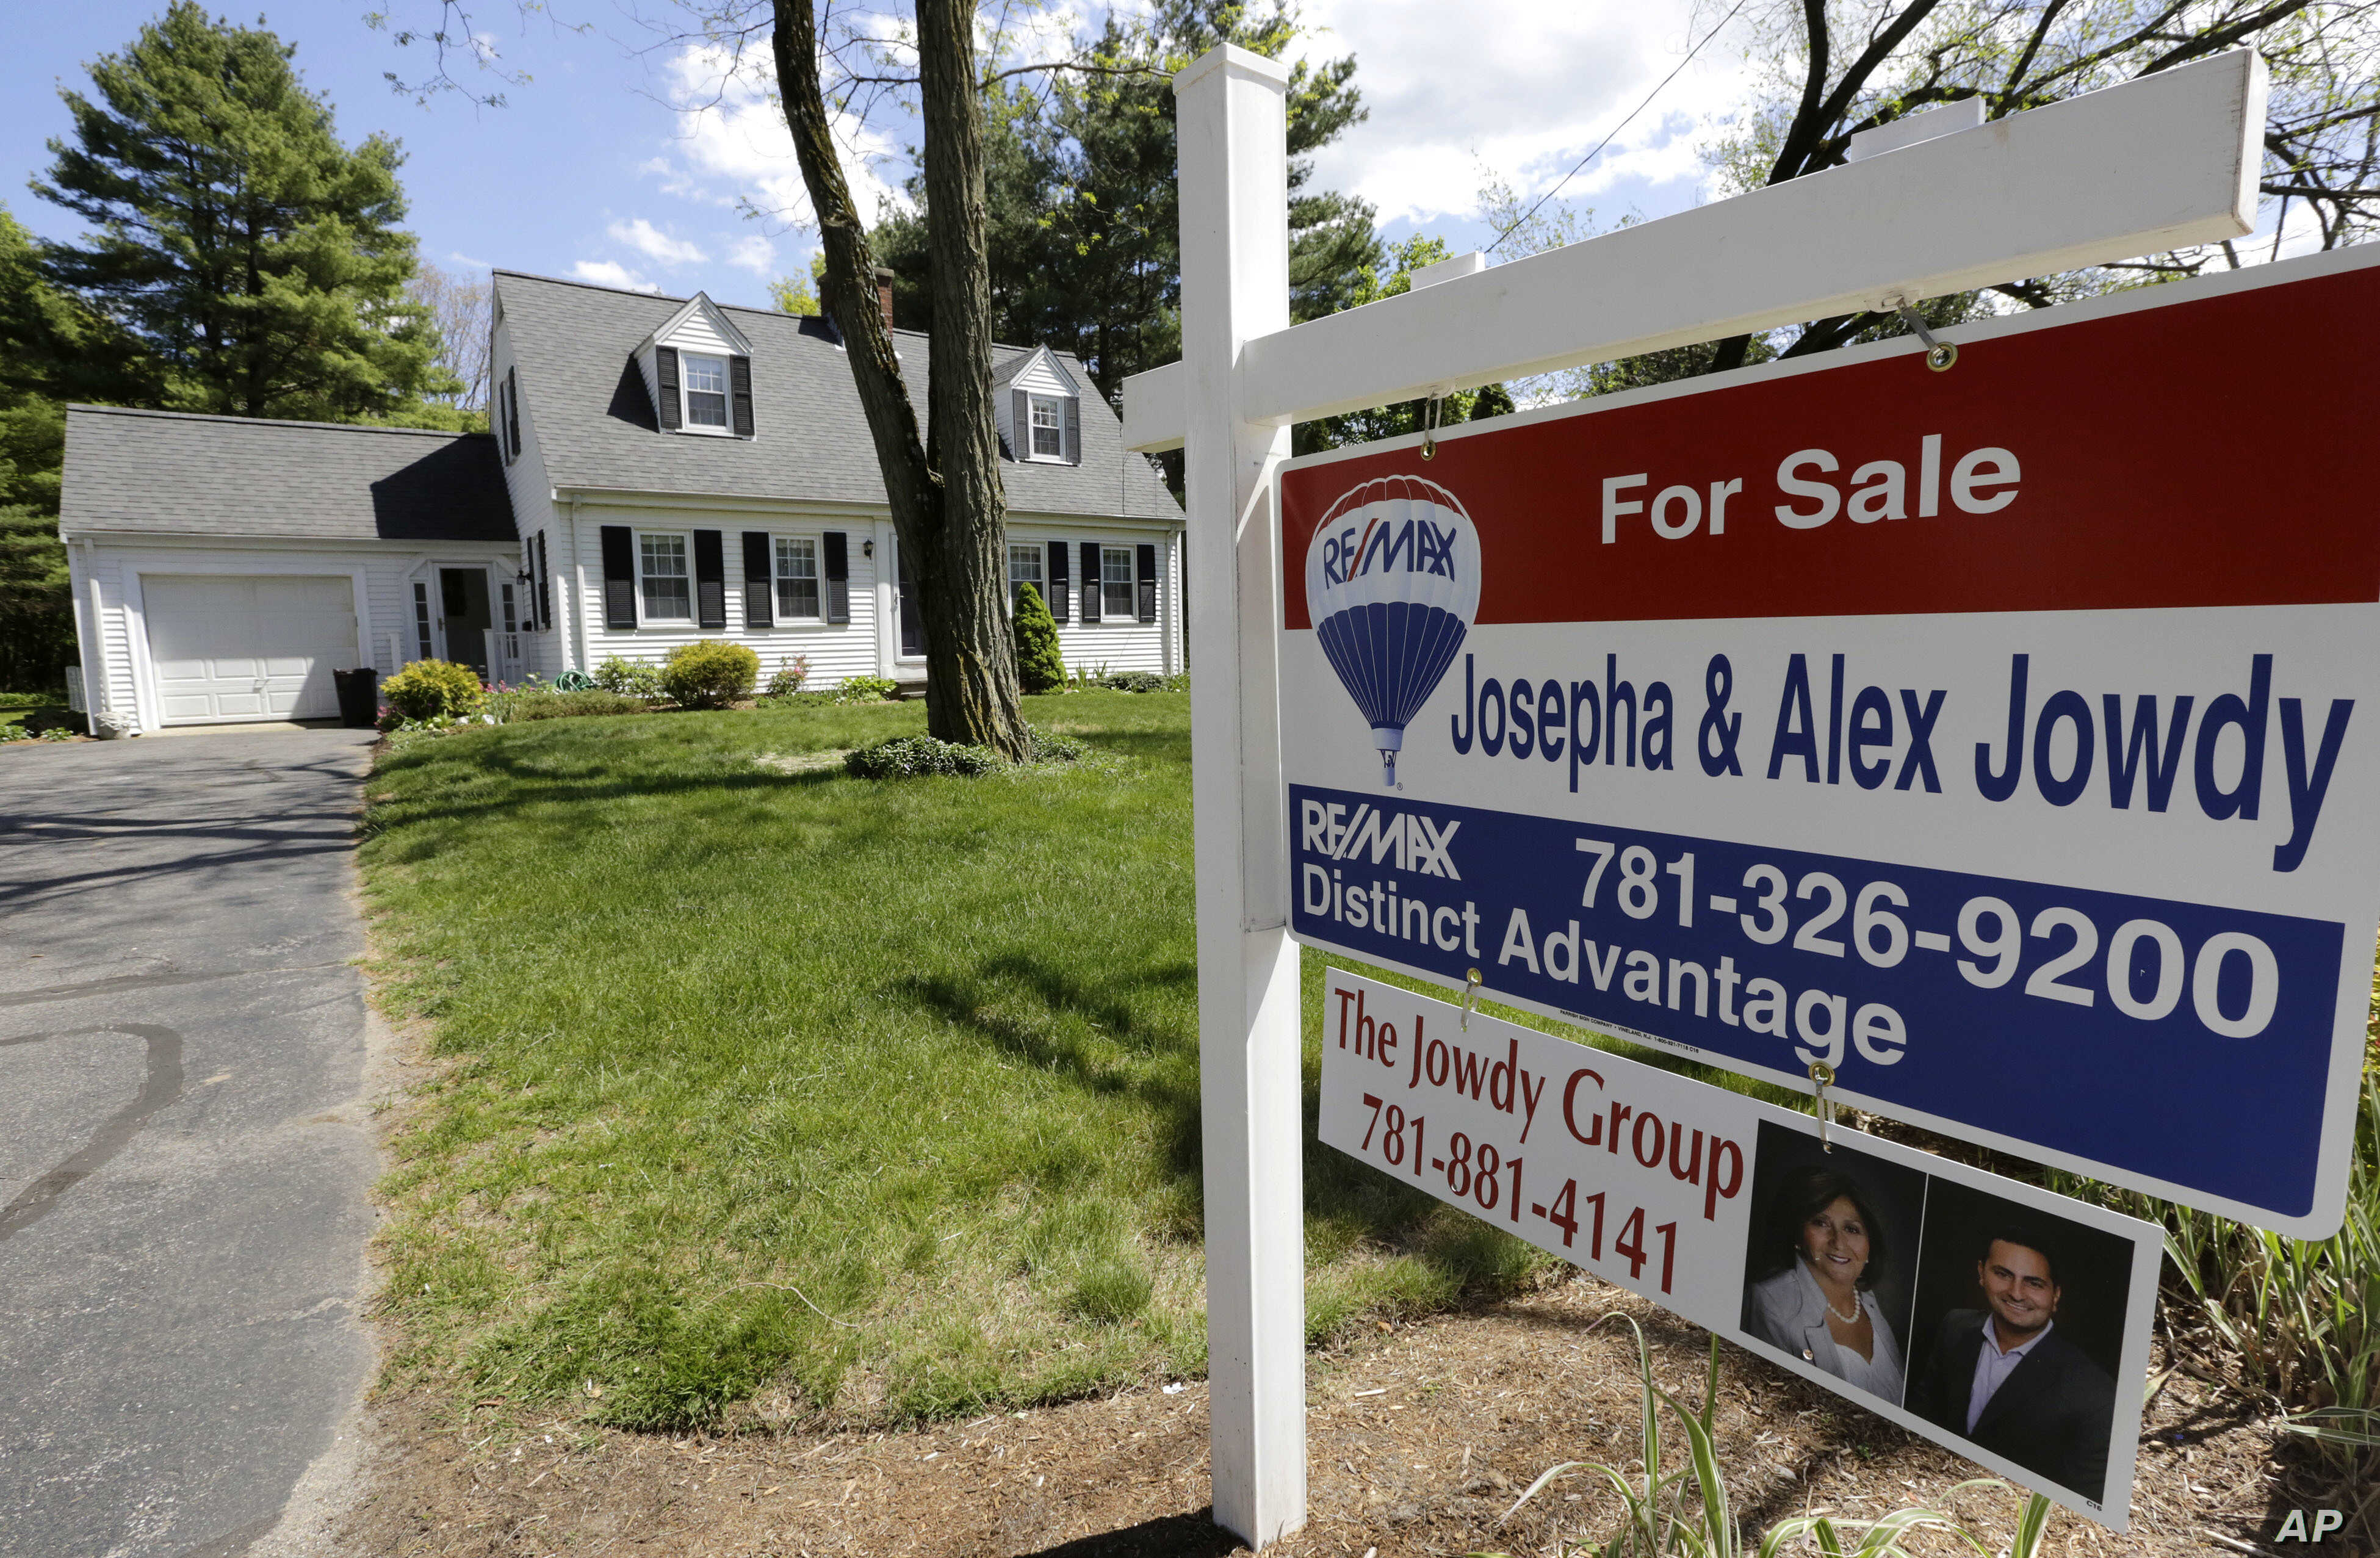 American Dream of Home Ownership is Changing | Voice of